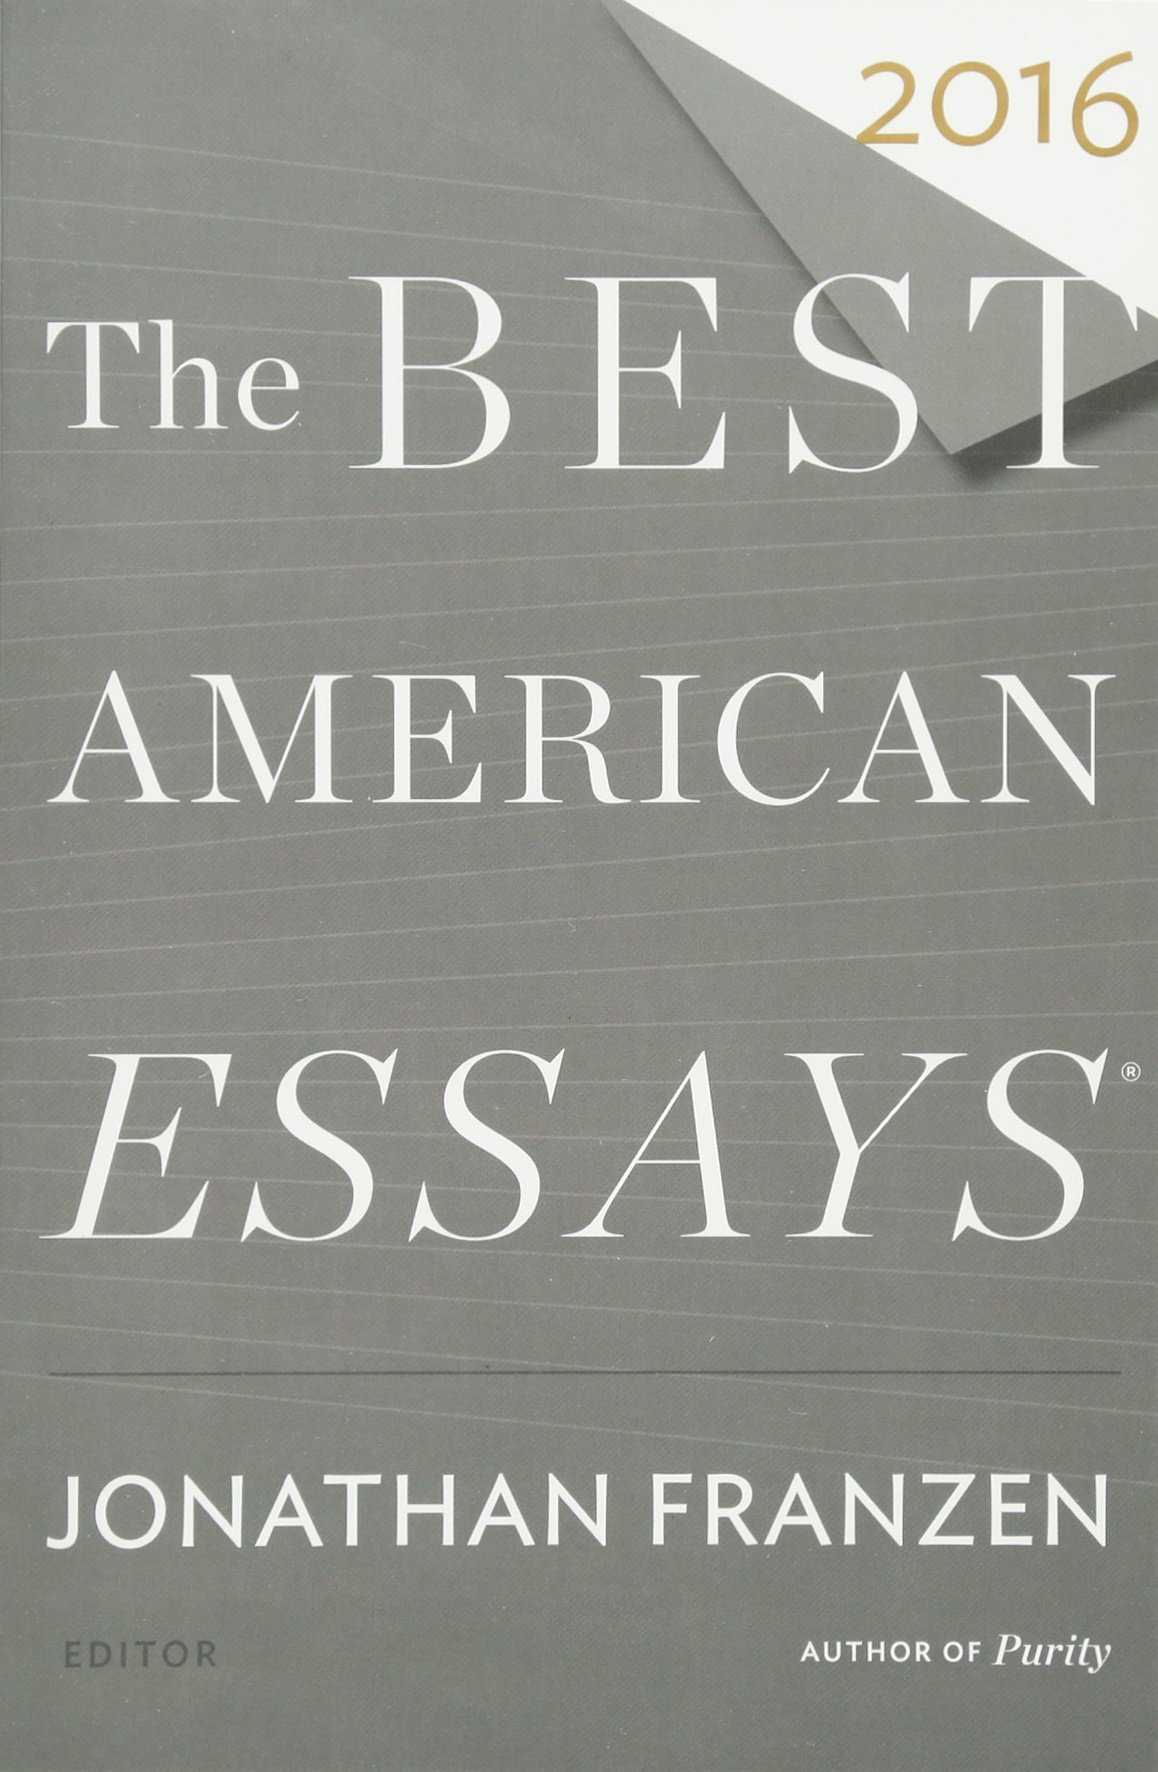 009 71a6bhsgsdl The Best American Essays Of Century Essay Imposing Contents Summaries Full